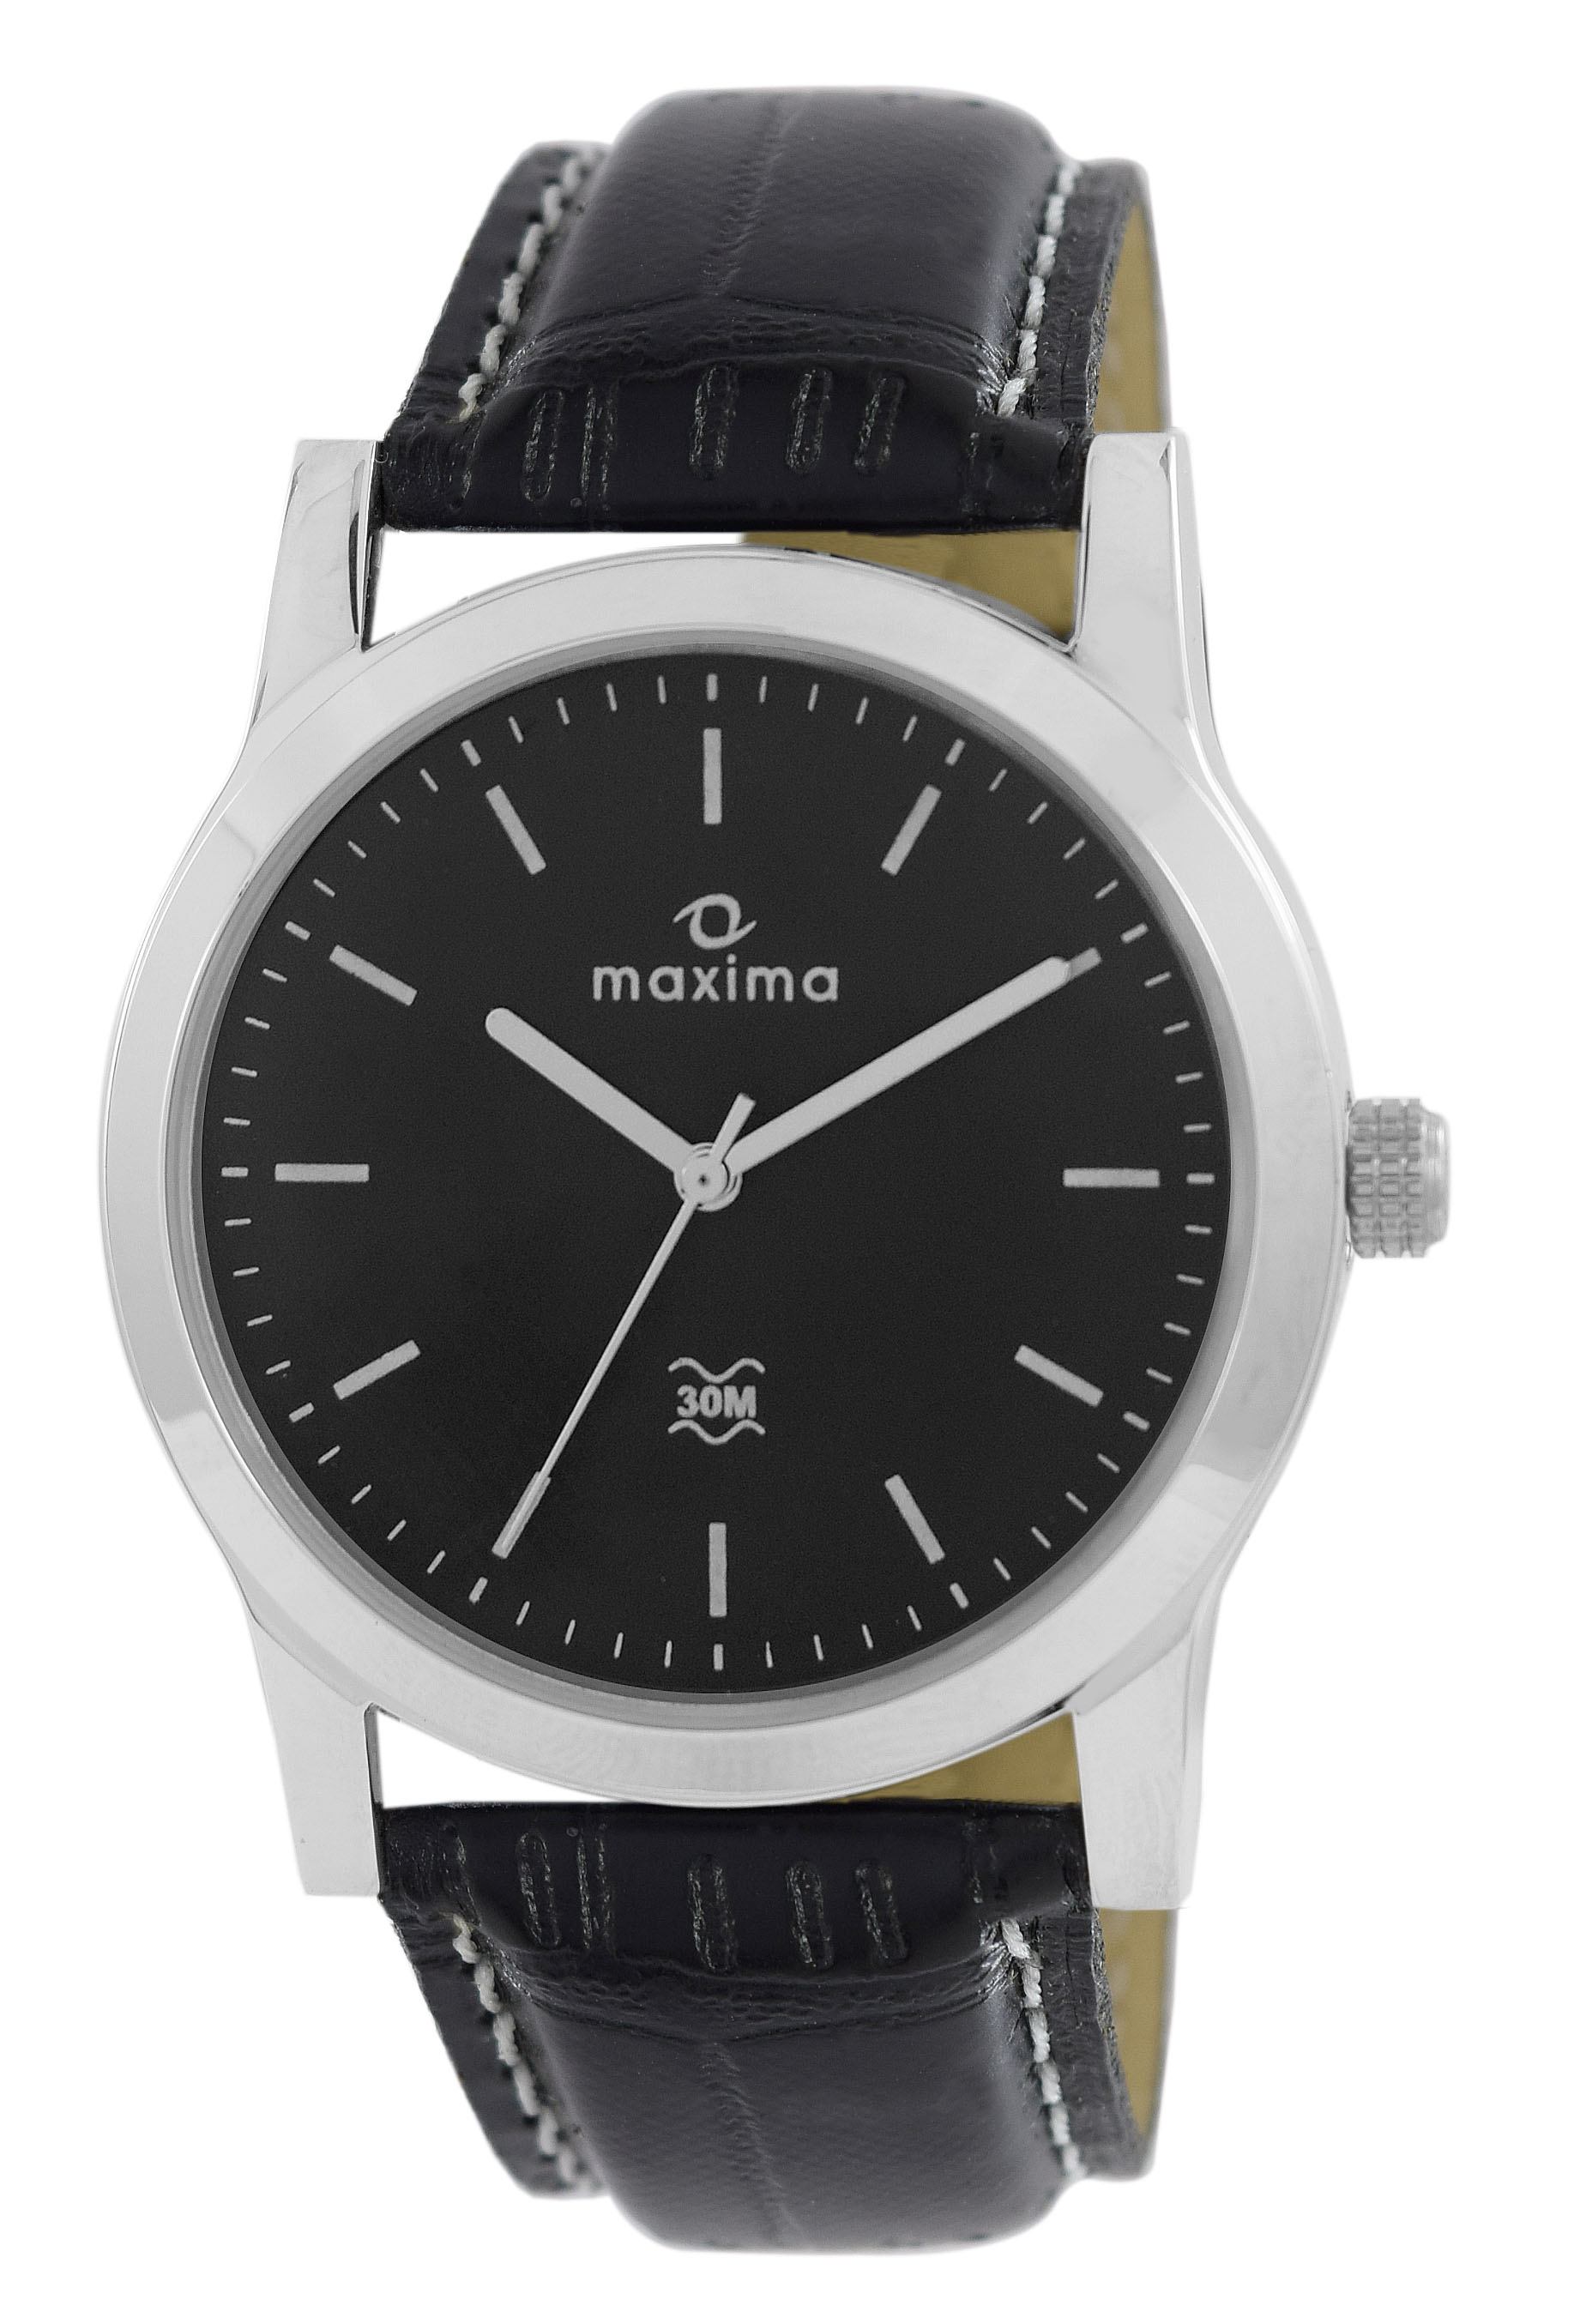 maxima buy brown shopping in watches men india watch for leather zoom by chronograph online